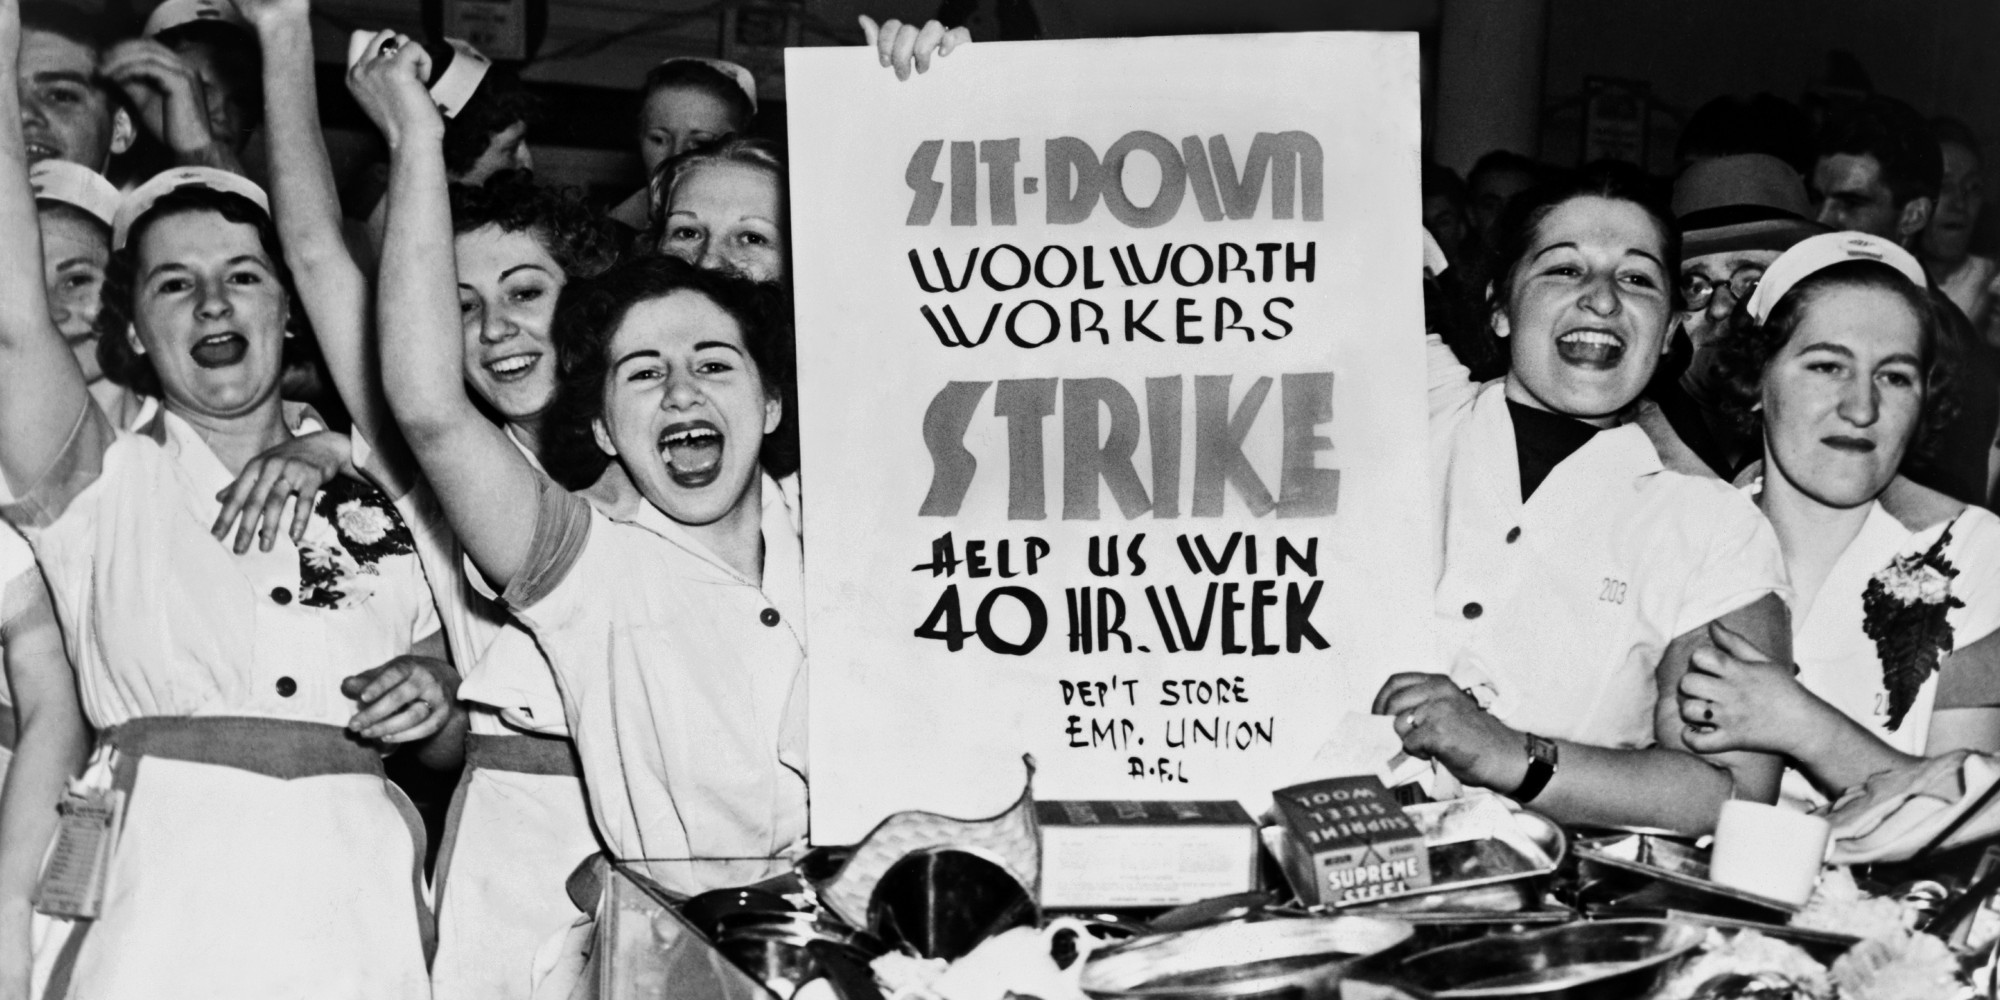 Woolworth Workers Strike